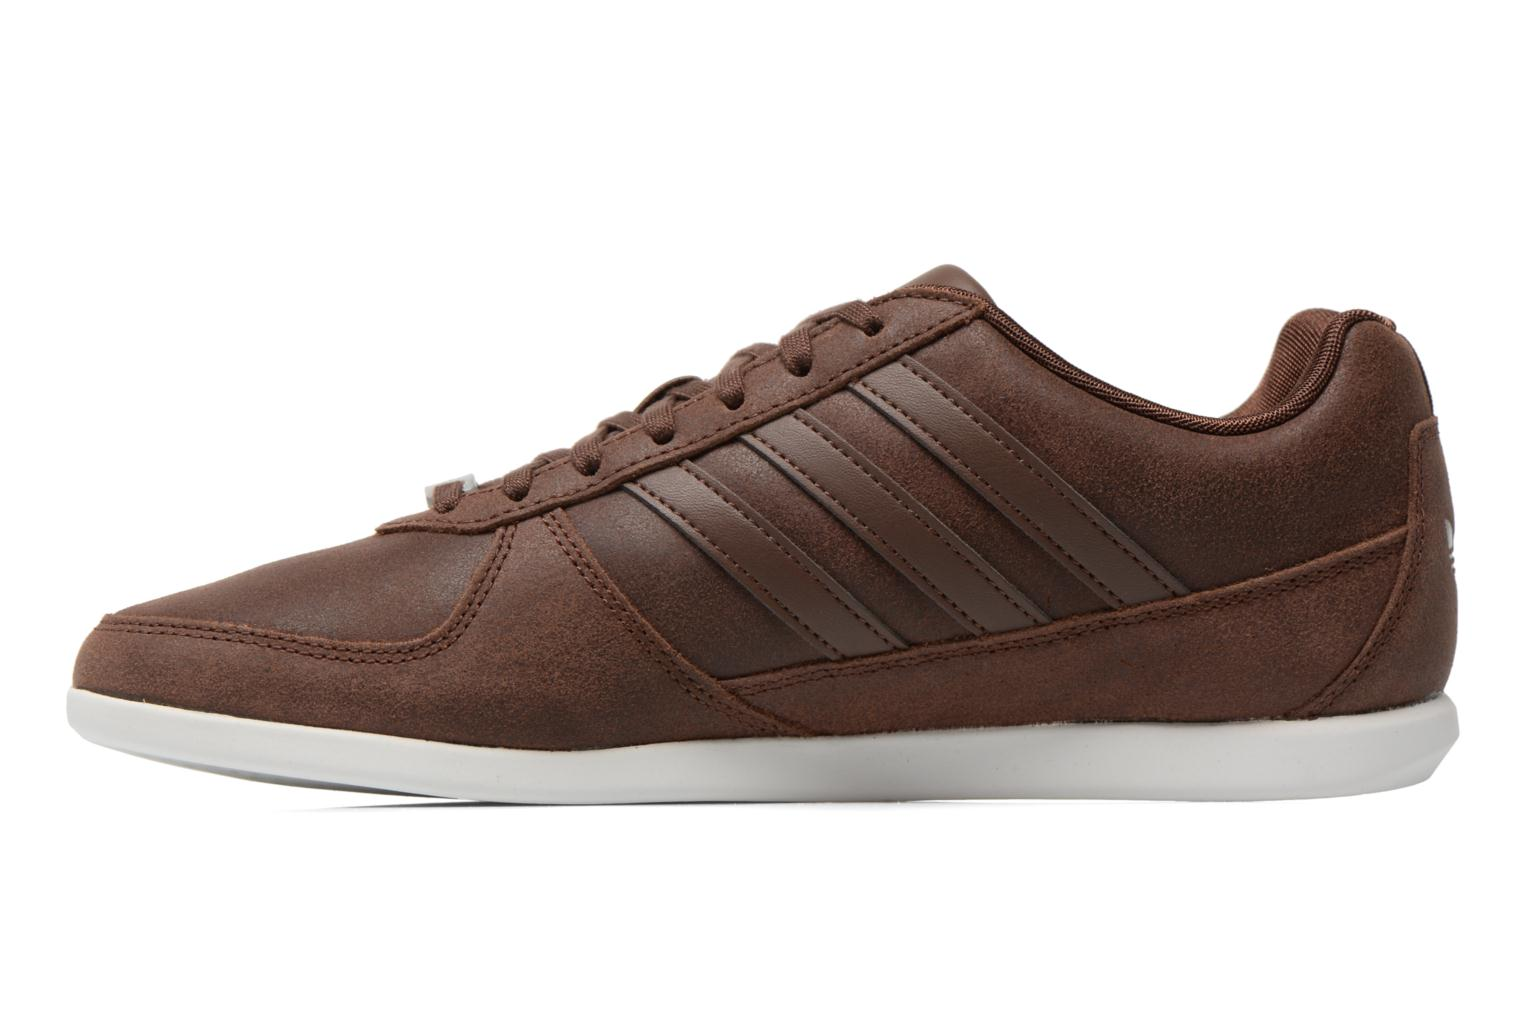 Baskets Adidas Originals Porsche 360 1.2 Suede Marron vue face